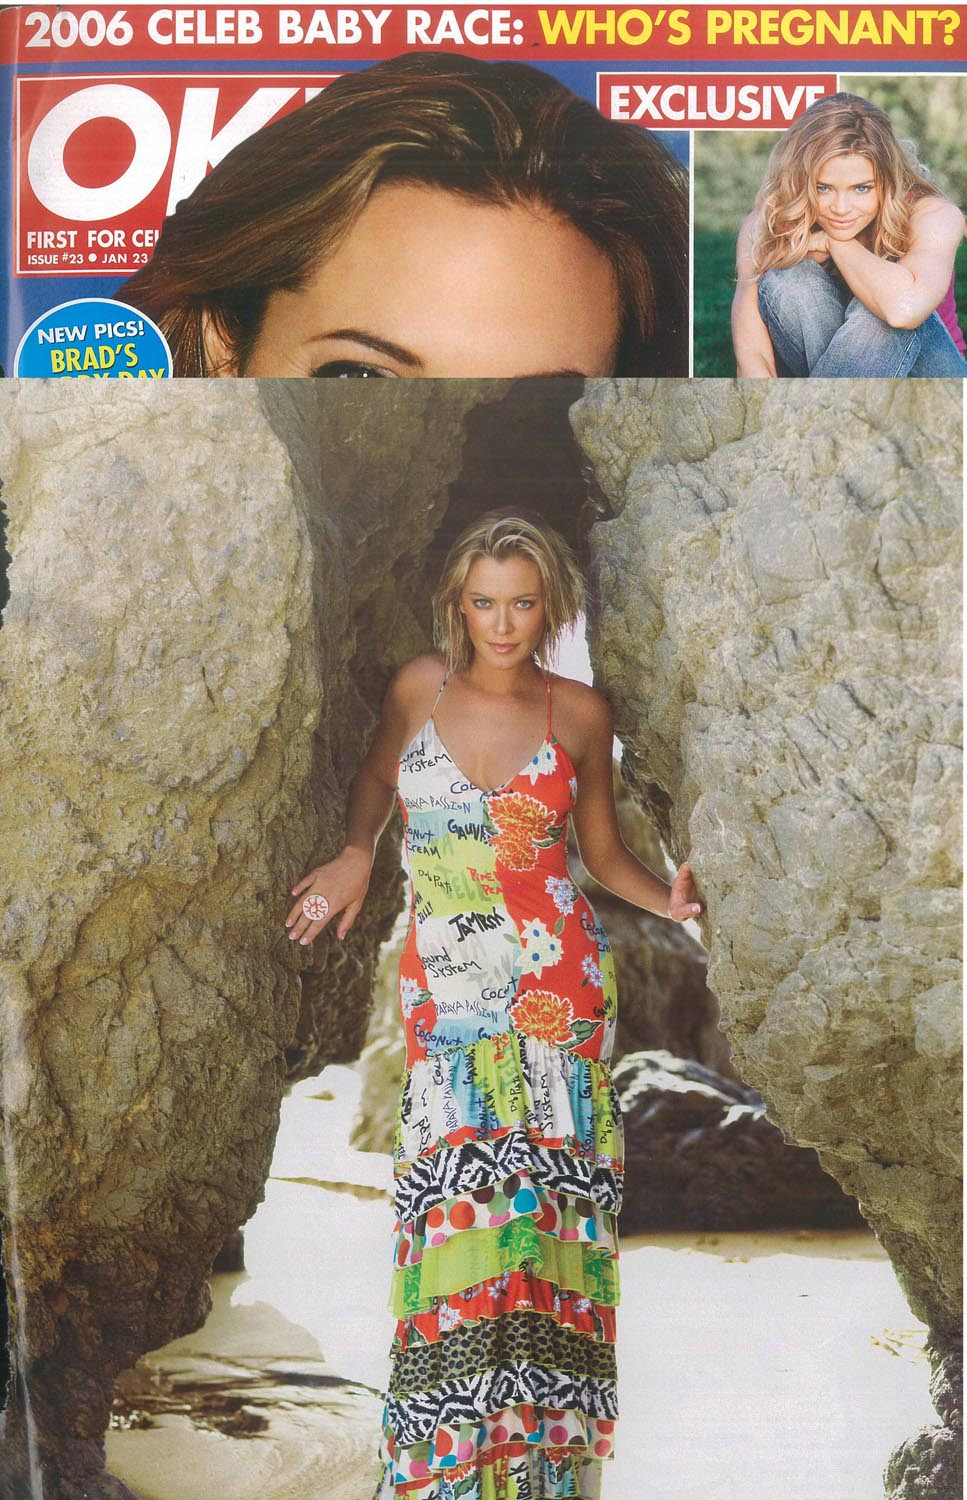 OK Magazine. Catch A Fire Clothing. Mixed Media Dress.